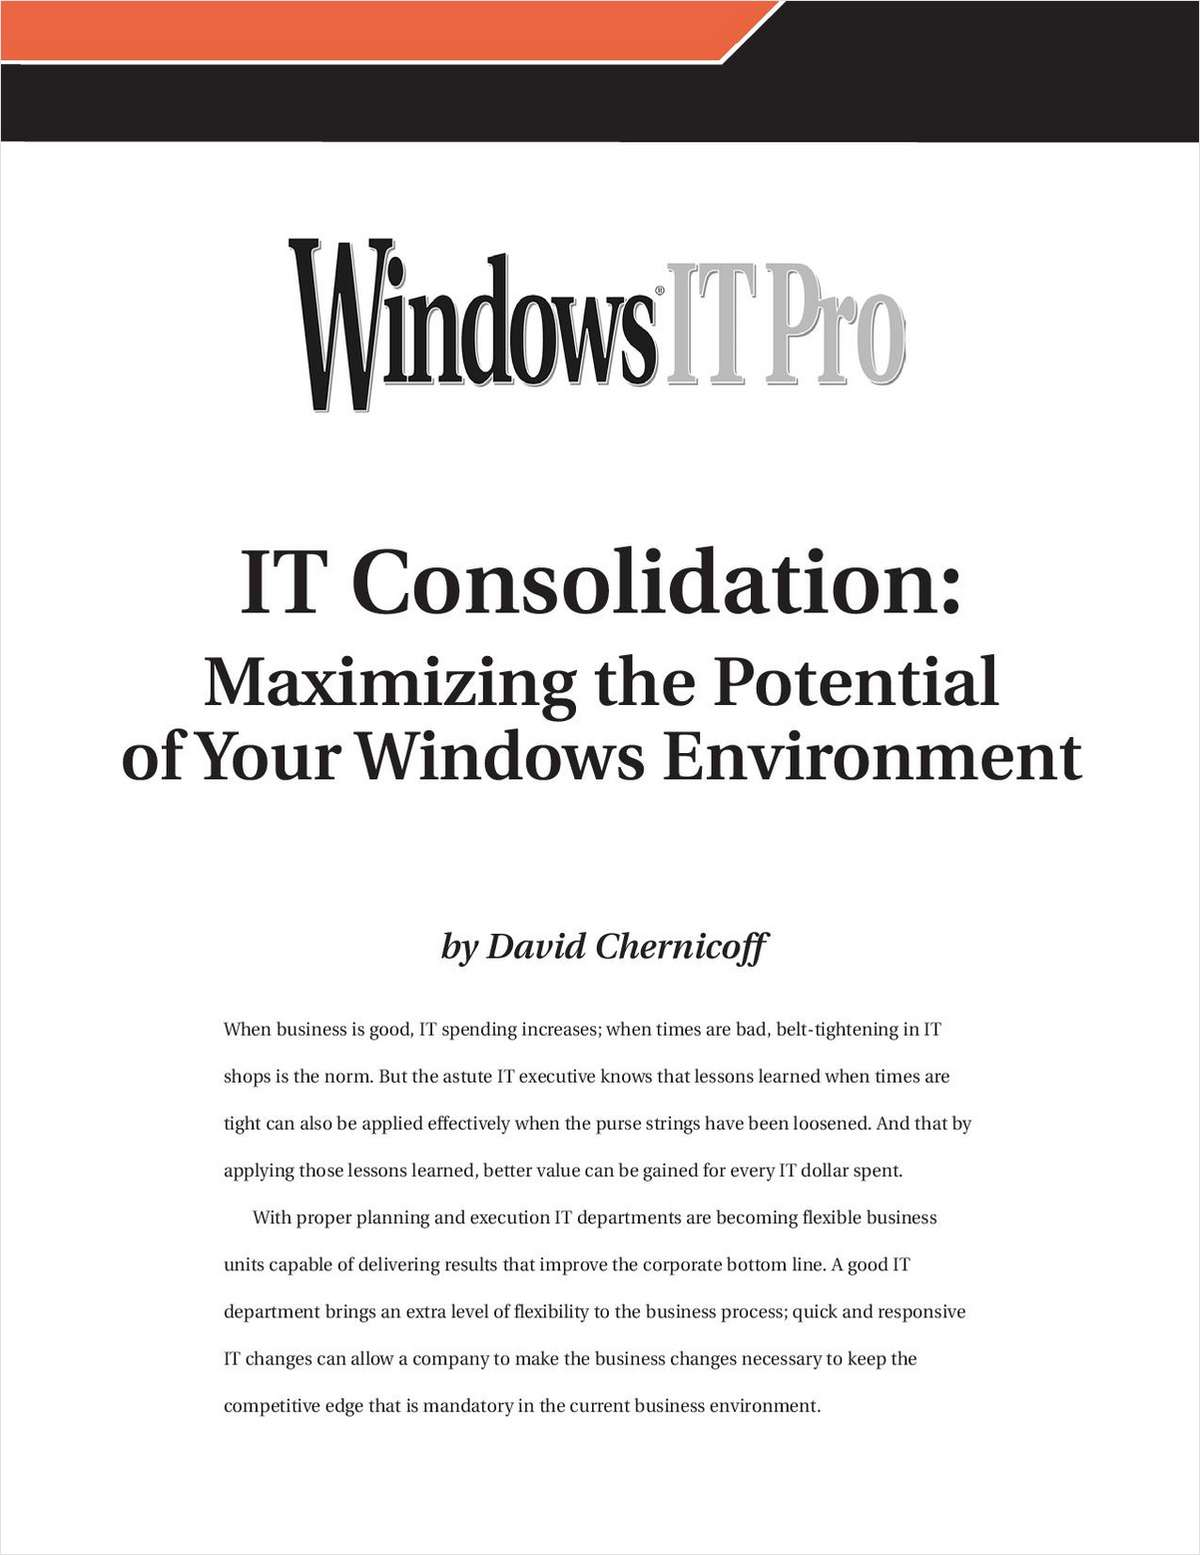 IT Consolidation: Maximizing the Potential of Your Windows Environment